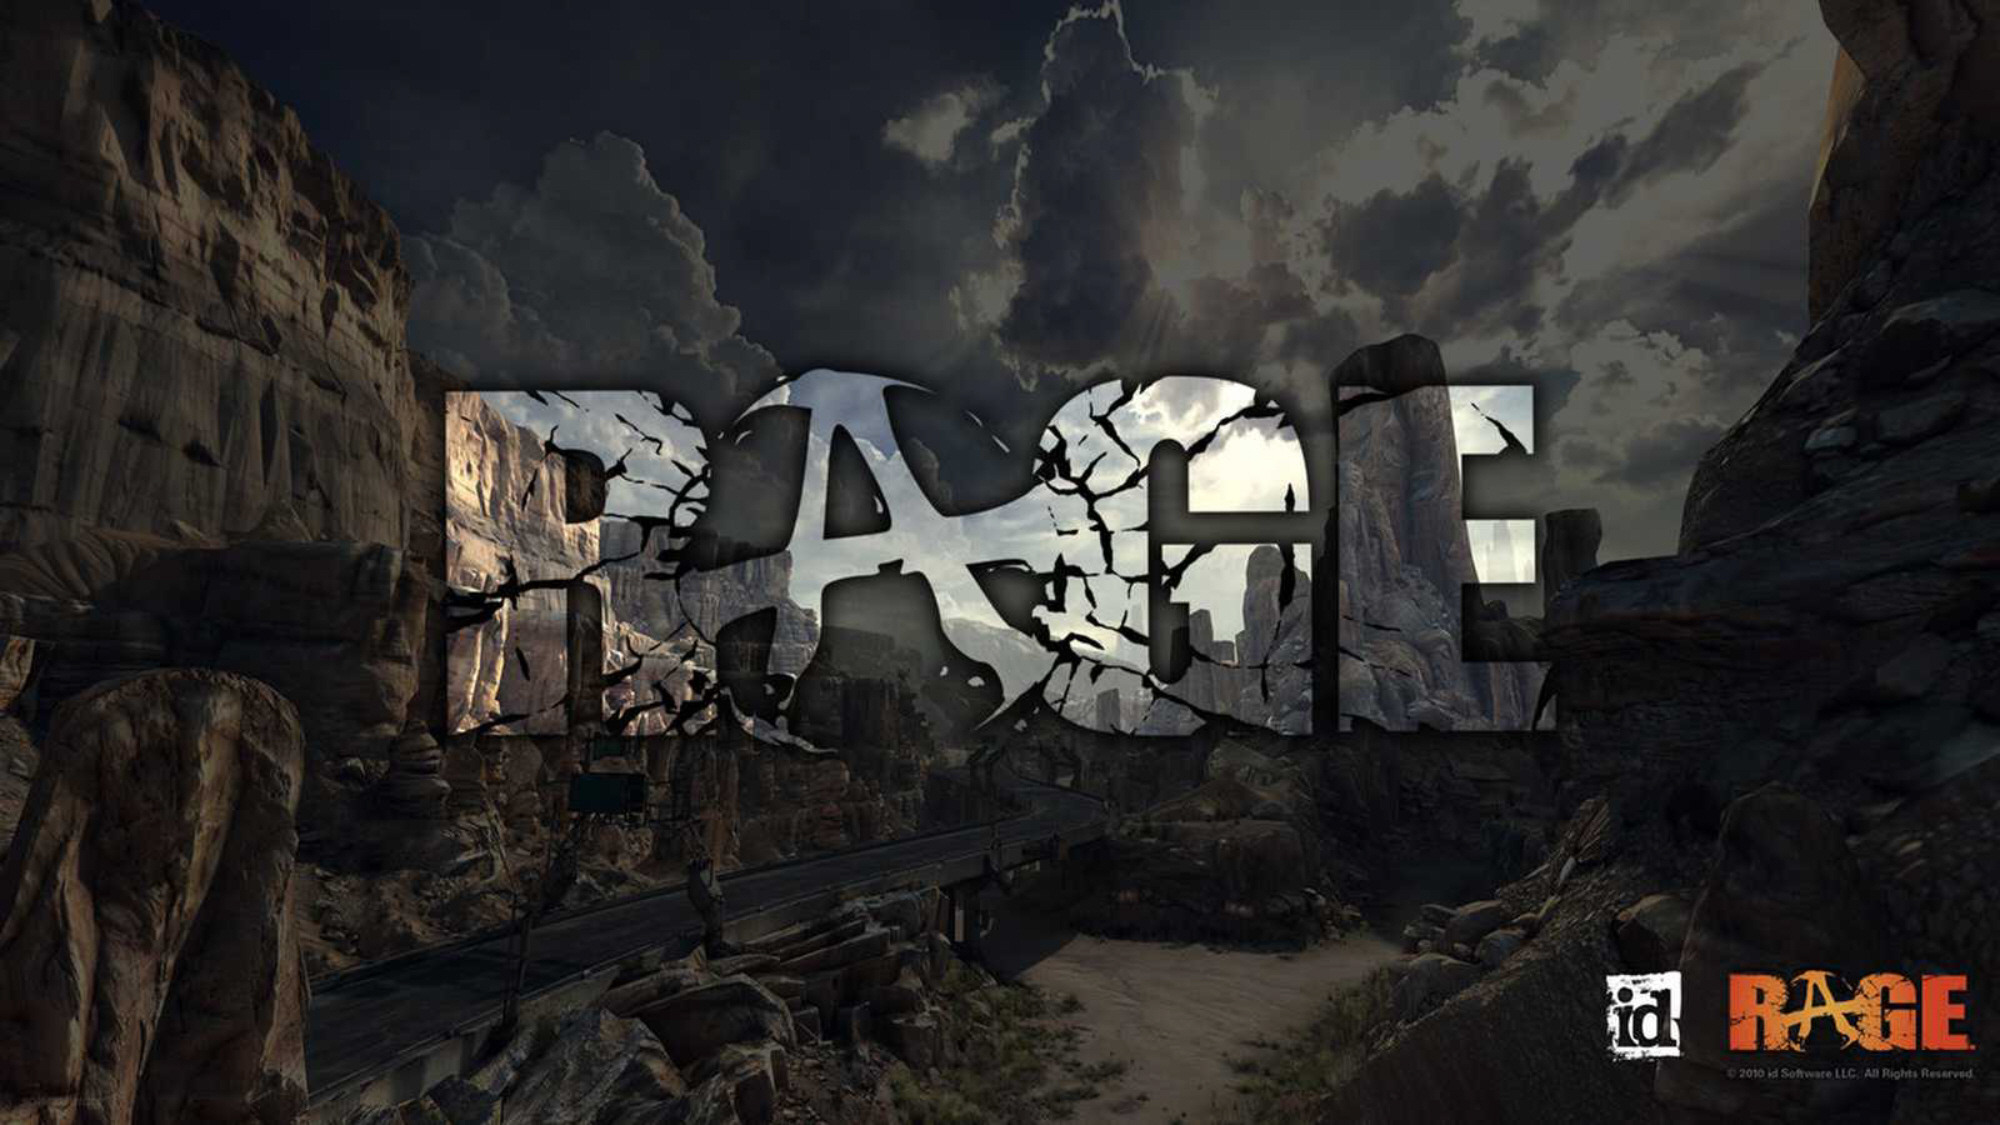 rage-game-wallpaper-metallic-logo